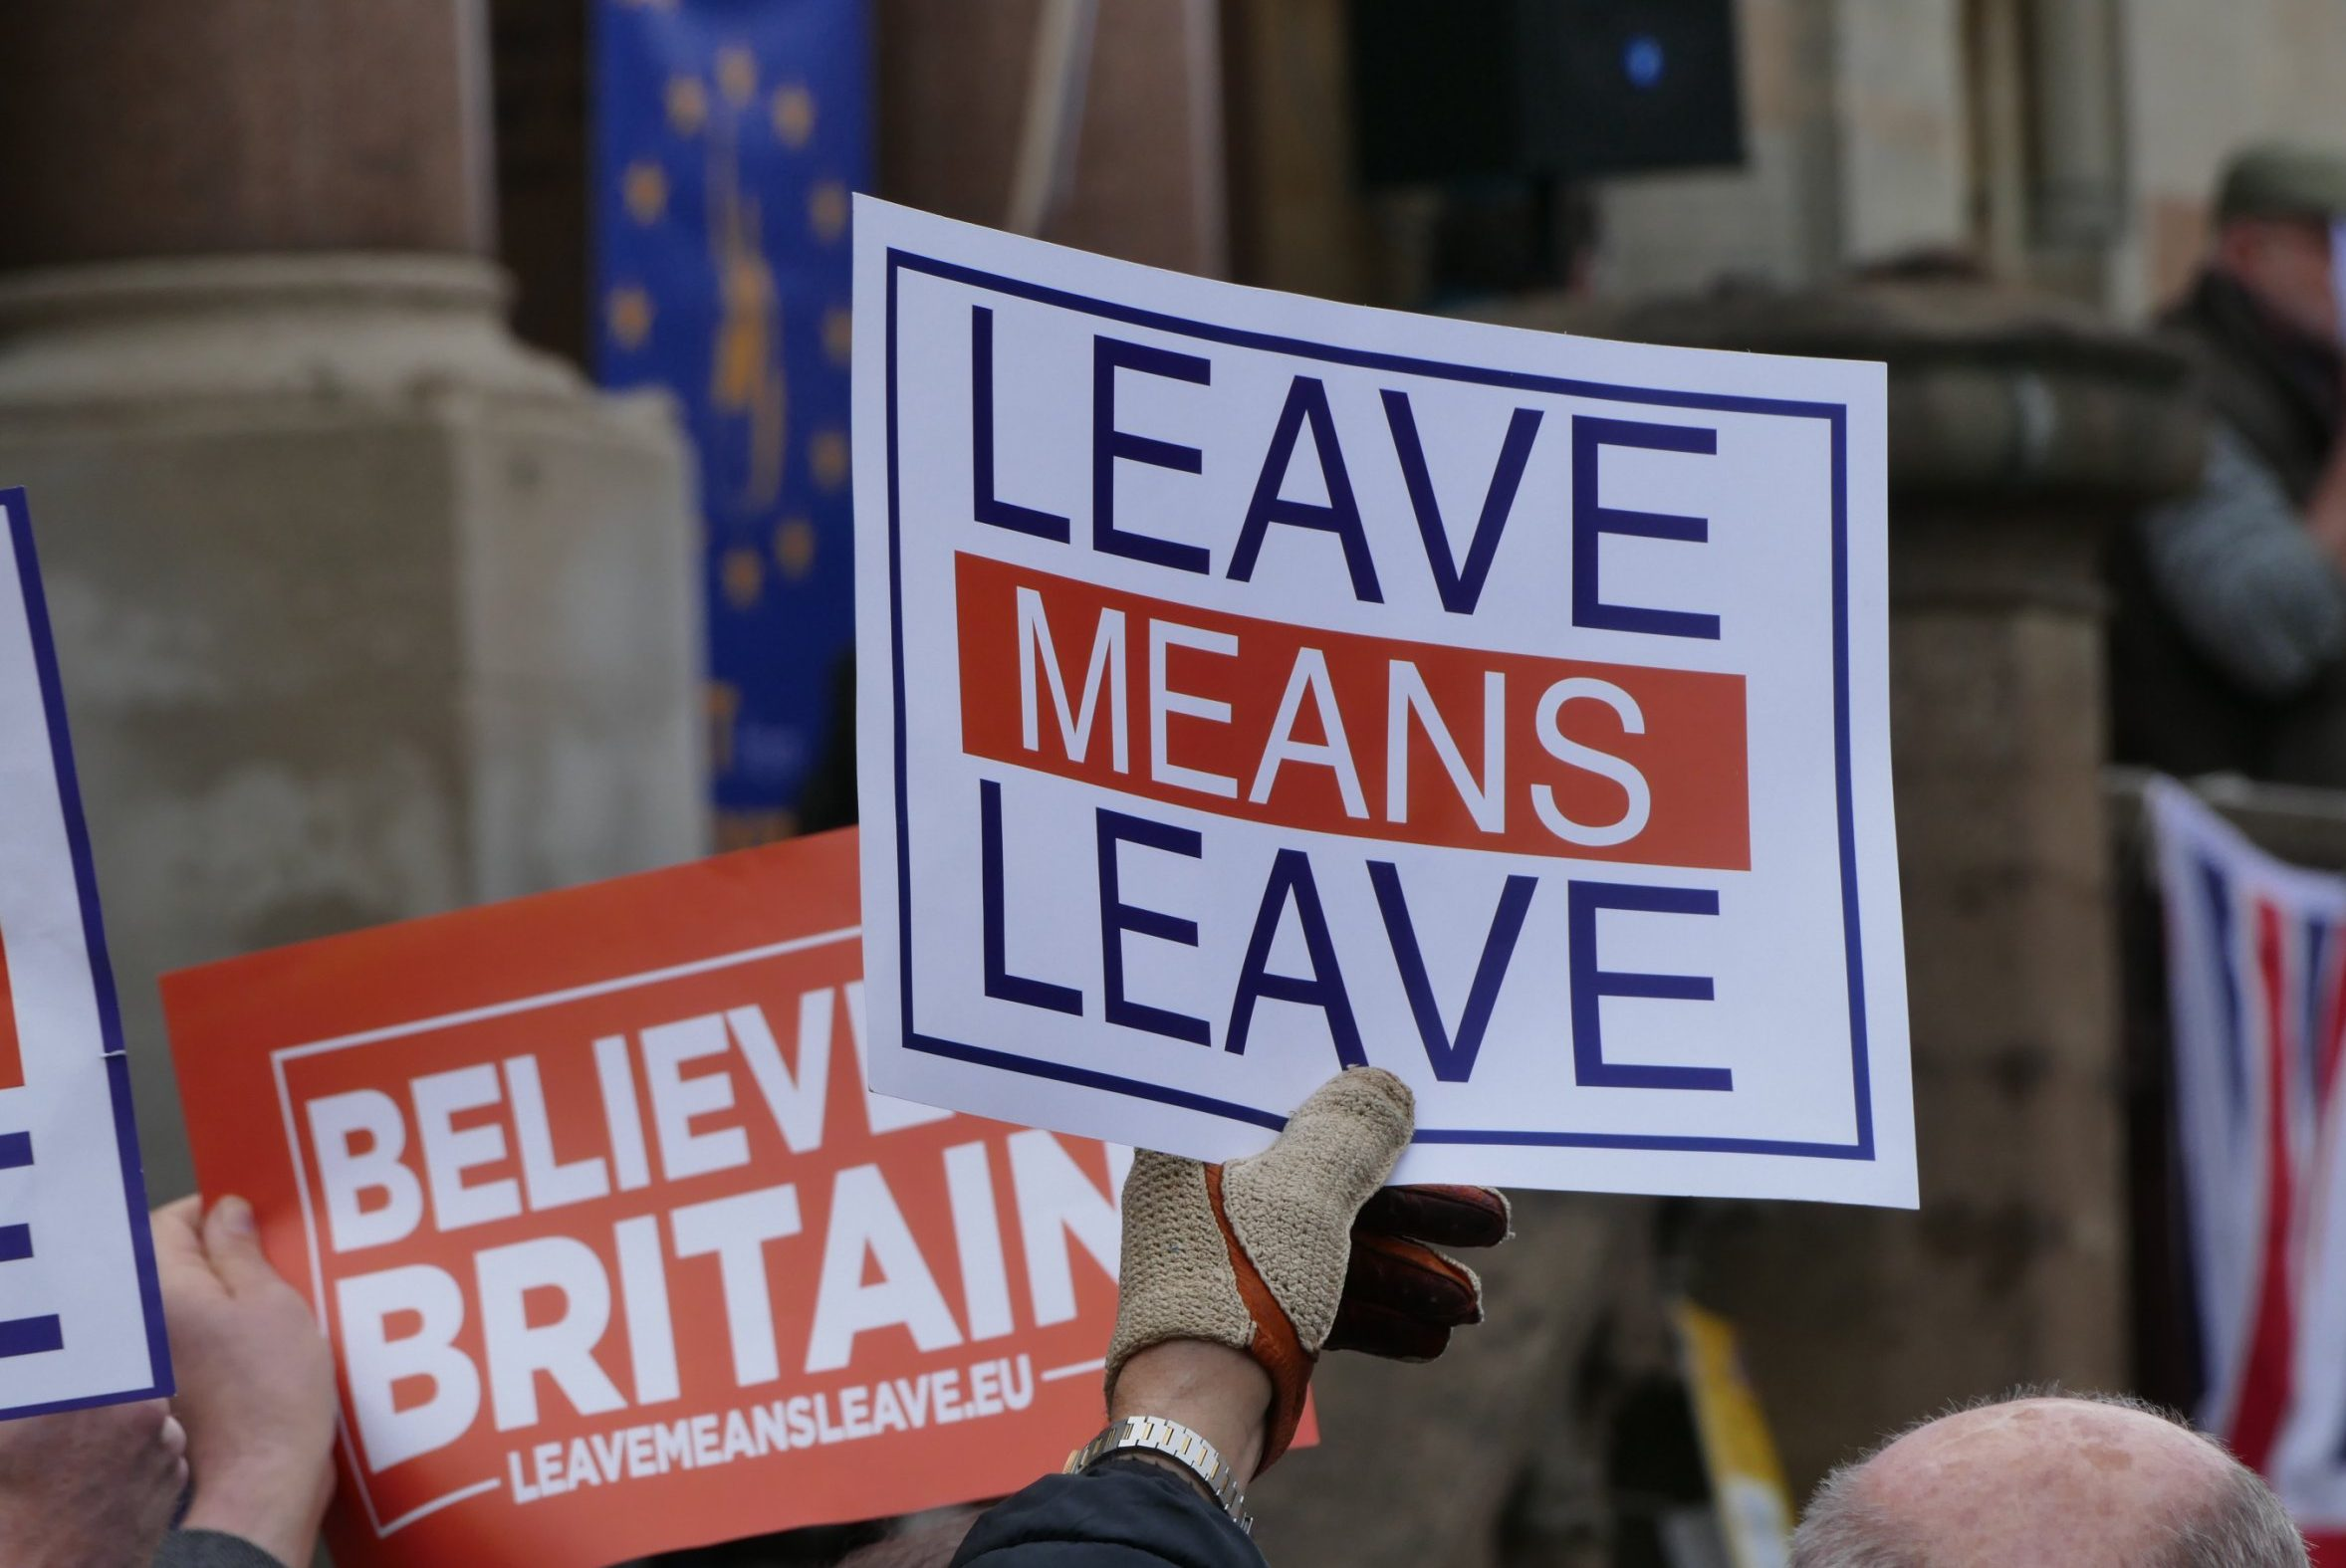 I'm a millennial, left-wing feminist who voted Leave and I'm far from alone